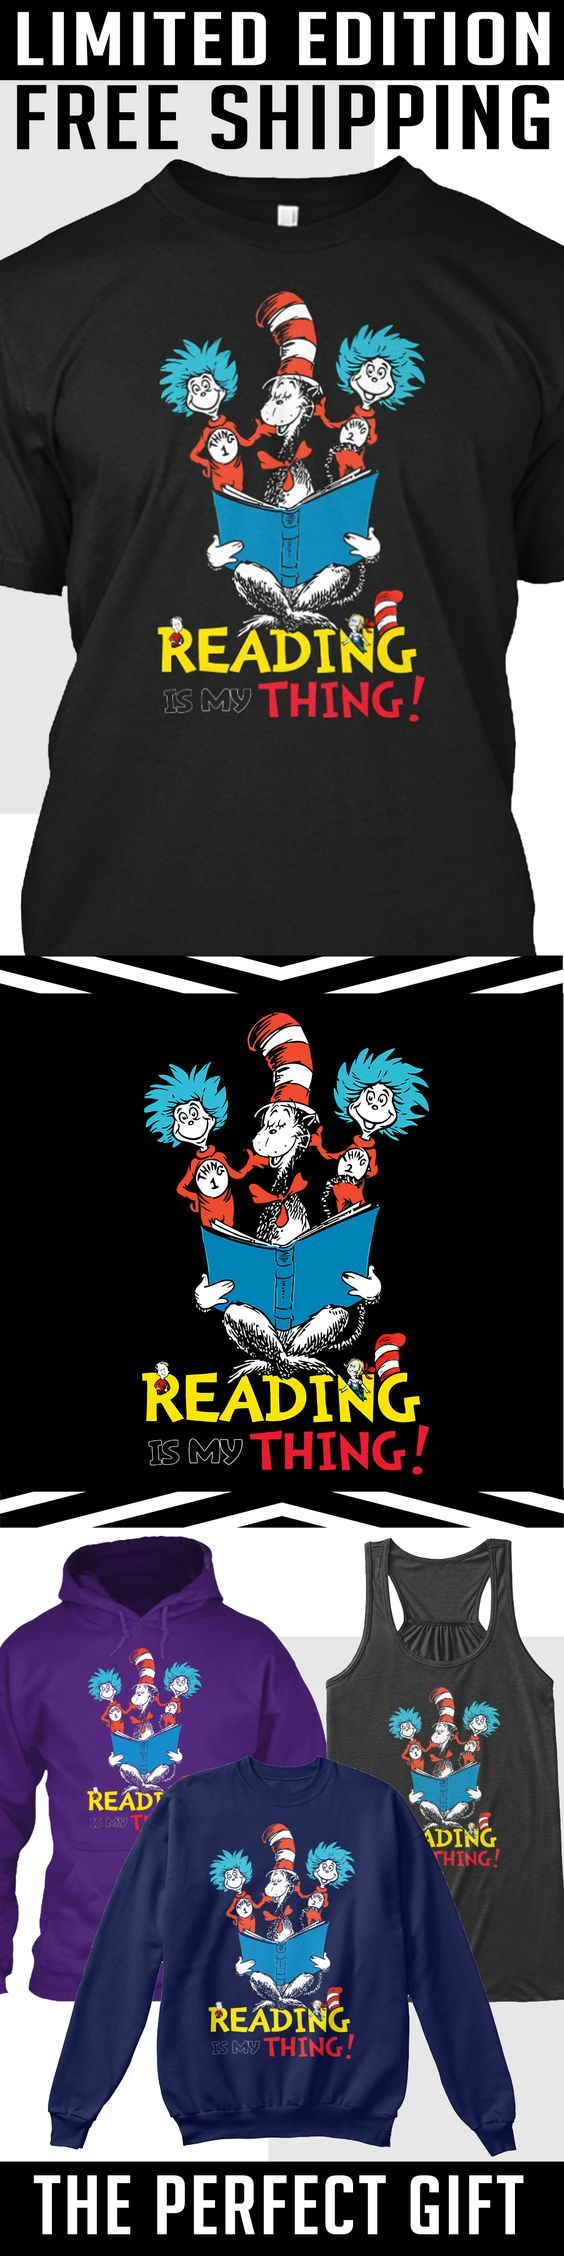 Reading Across America - Limited Edition. Only 2 days left for free shipping, get it now!